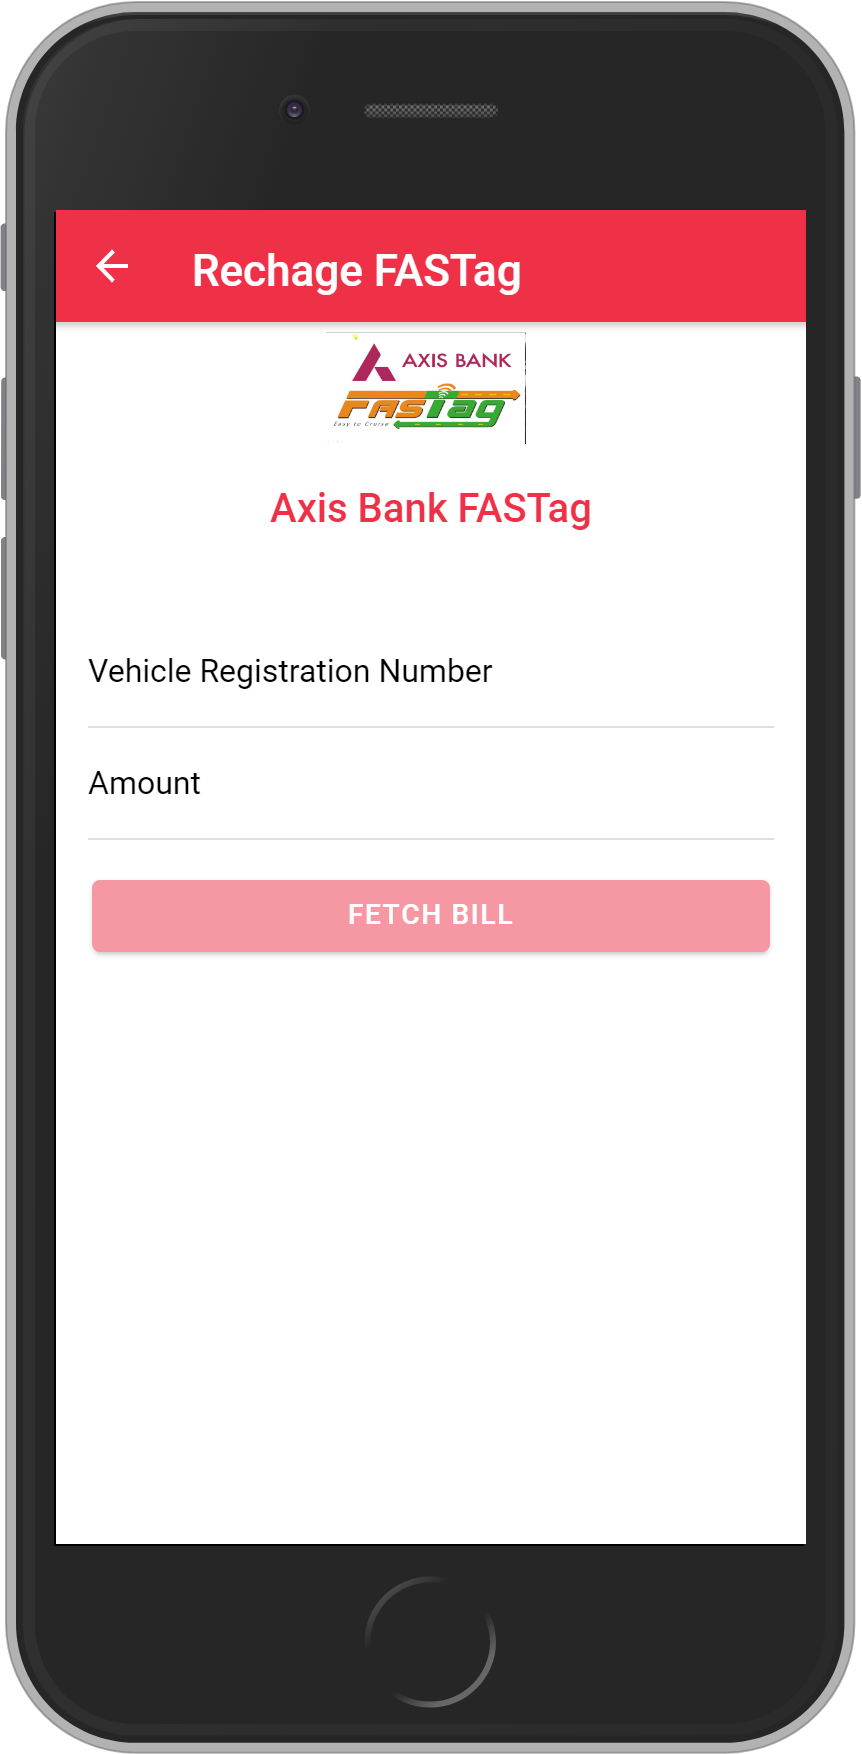 Get UNLIMITED <b>0.1%</b> CASHBACK on Axis Bank FASTag Recharge.